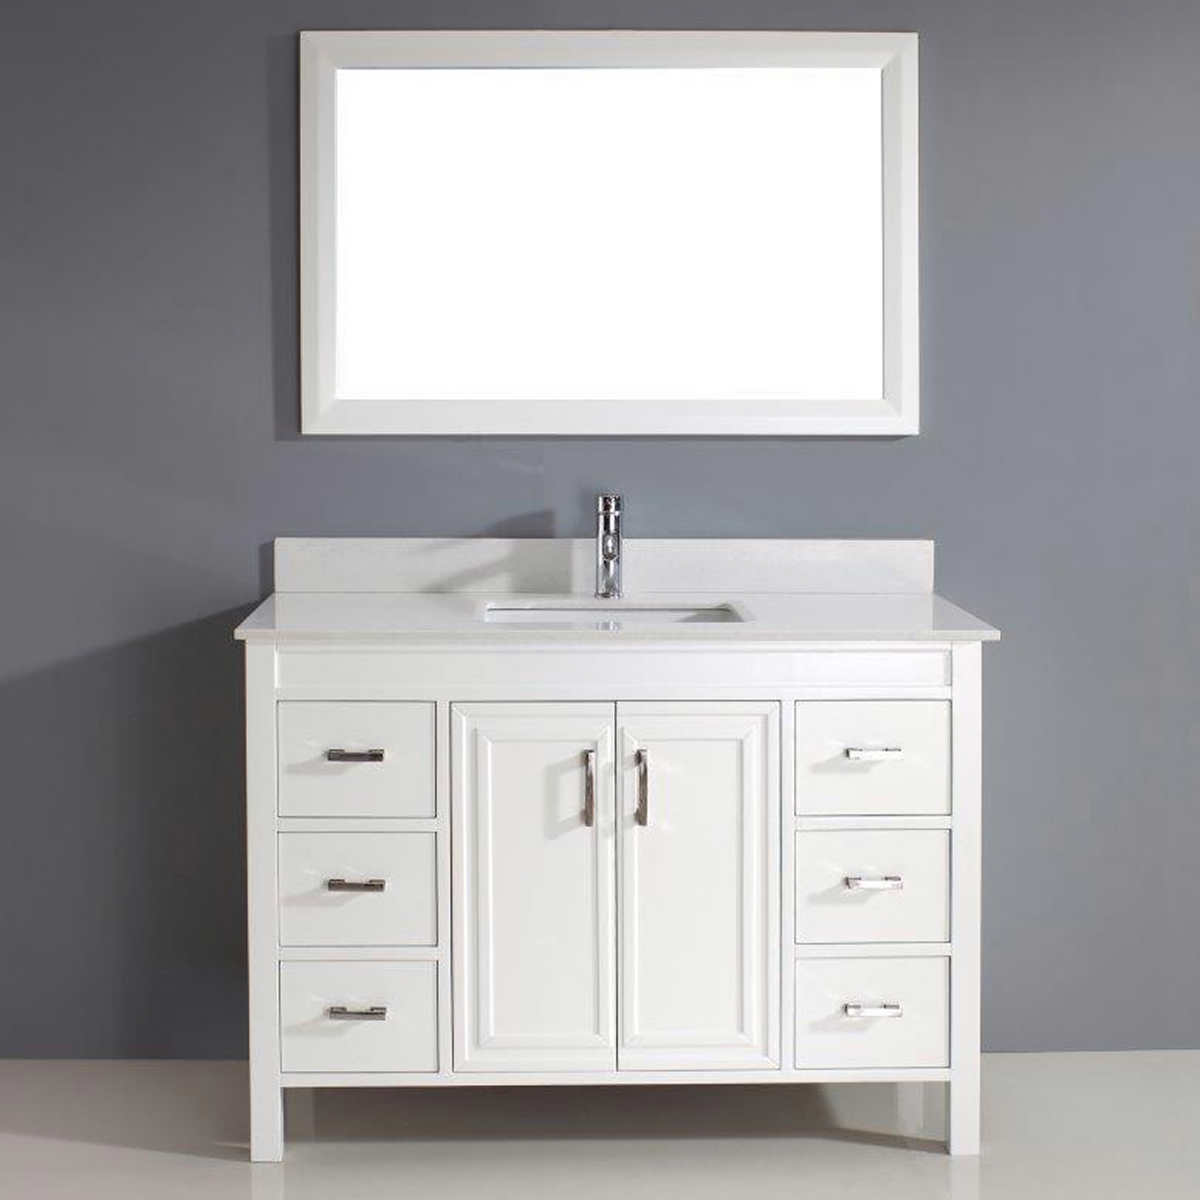 93 bathroom vanity costco excellent costco bathroom vanities